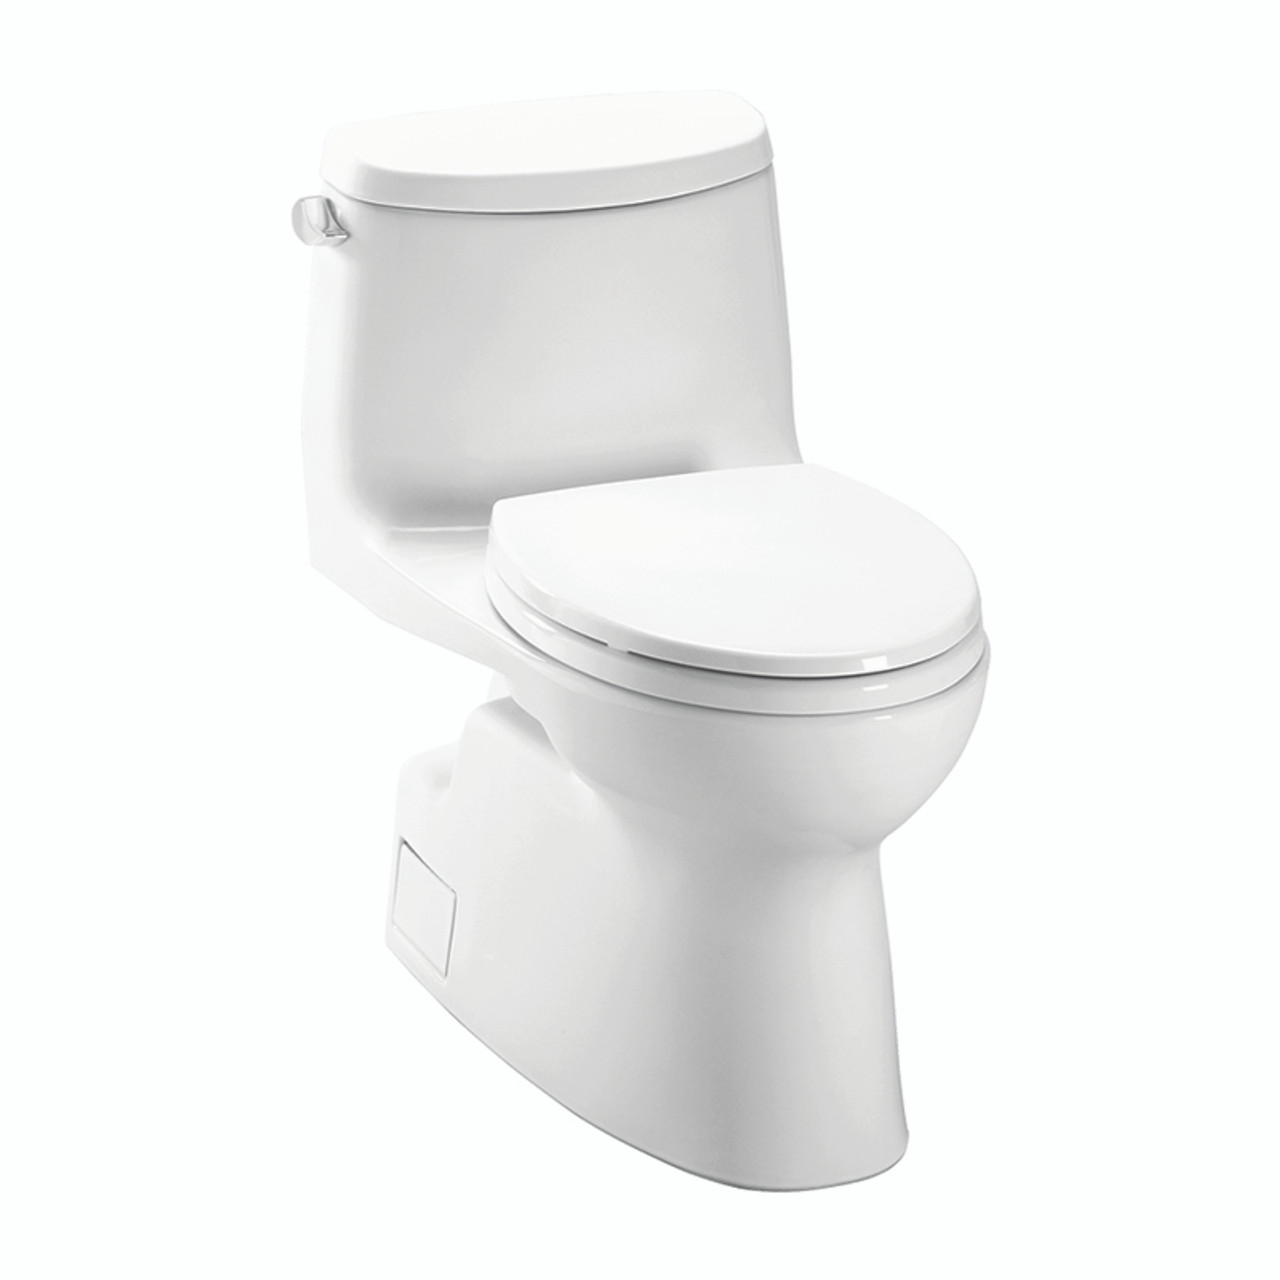 Stupendous Toto Ms614114Cefg01 Carlyle Ii 1 28 Gpf 1 Piece Elongated Toilet With Seat Beatyapartments Chair Design Images Beatyapartmentscom